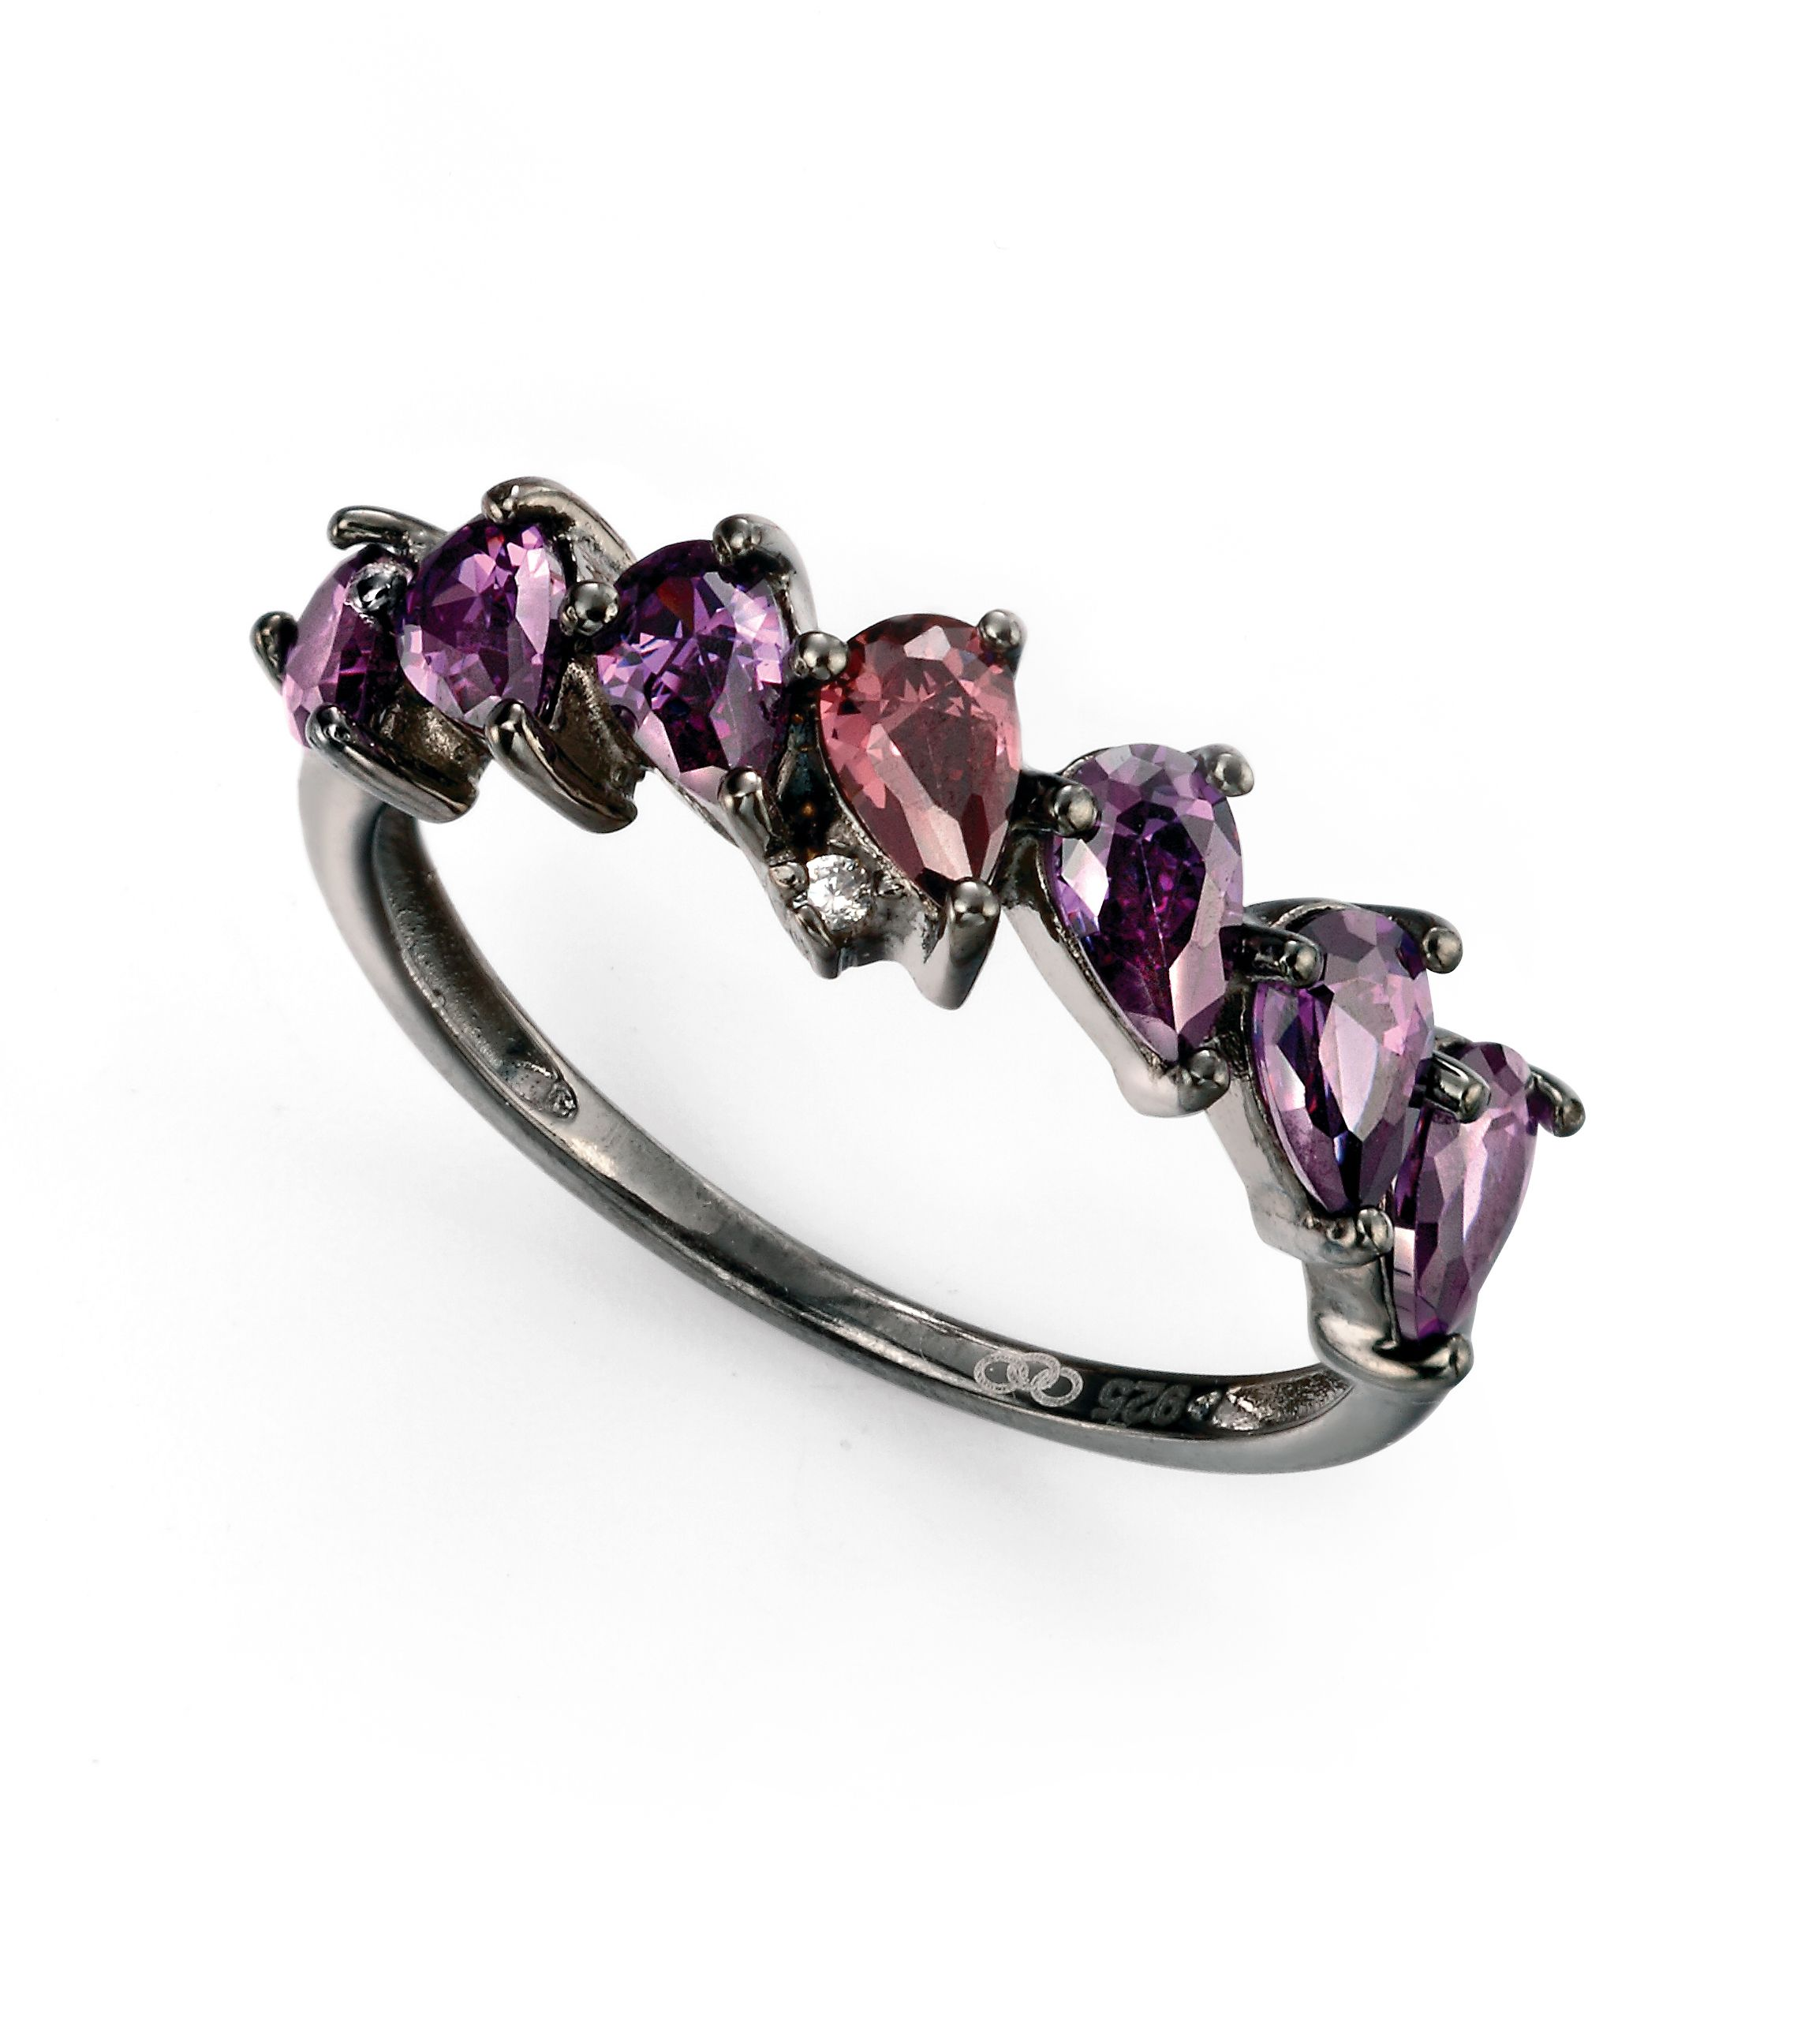 Elements Silver Womens 925 Sterling Silver Cobalt Plated Purples & Clear Cubic Zirconia Ring